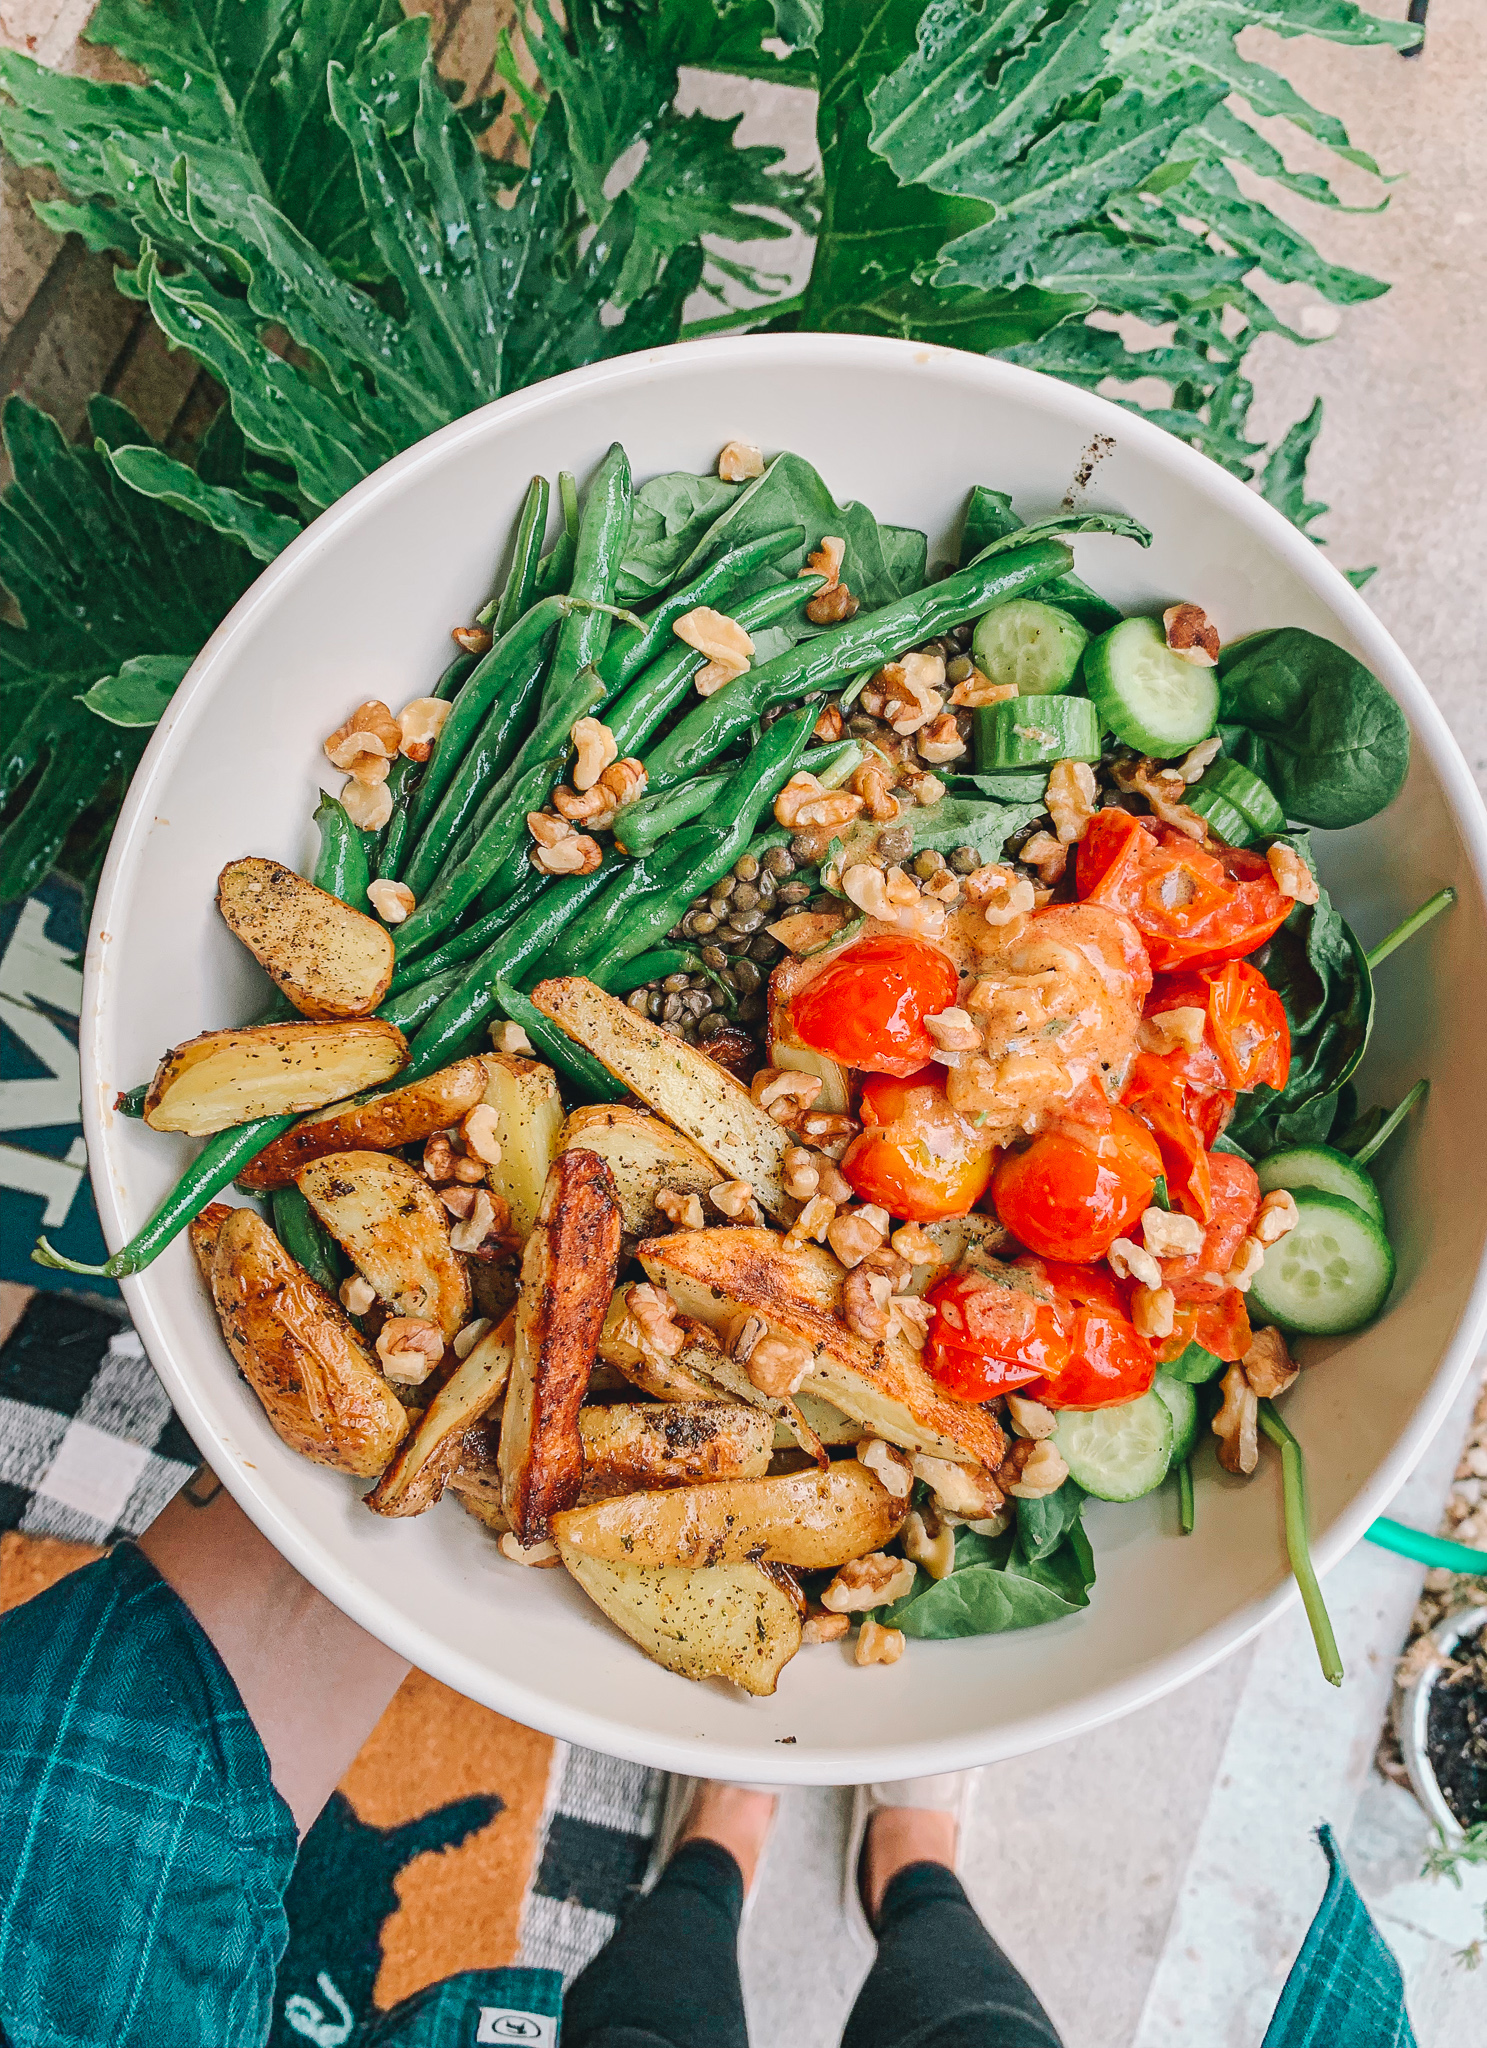 purple carrot, vegan, dairy free, gluten free, plant based, vegetarian, dinner night, tomatoes, green beans, roasted fingerling potatoes, honey mustard dressing, how to cook, purple carrot meal plan real review, spinach salad